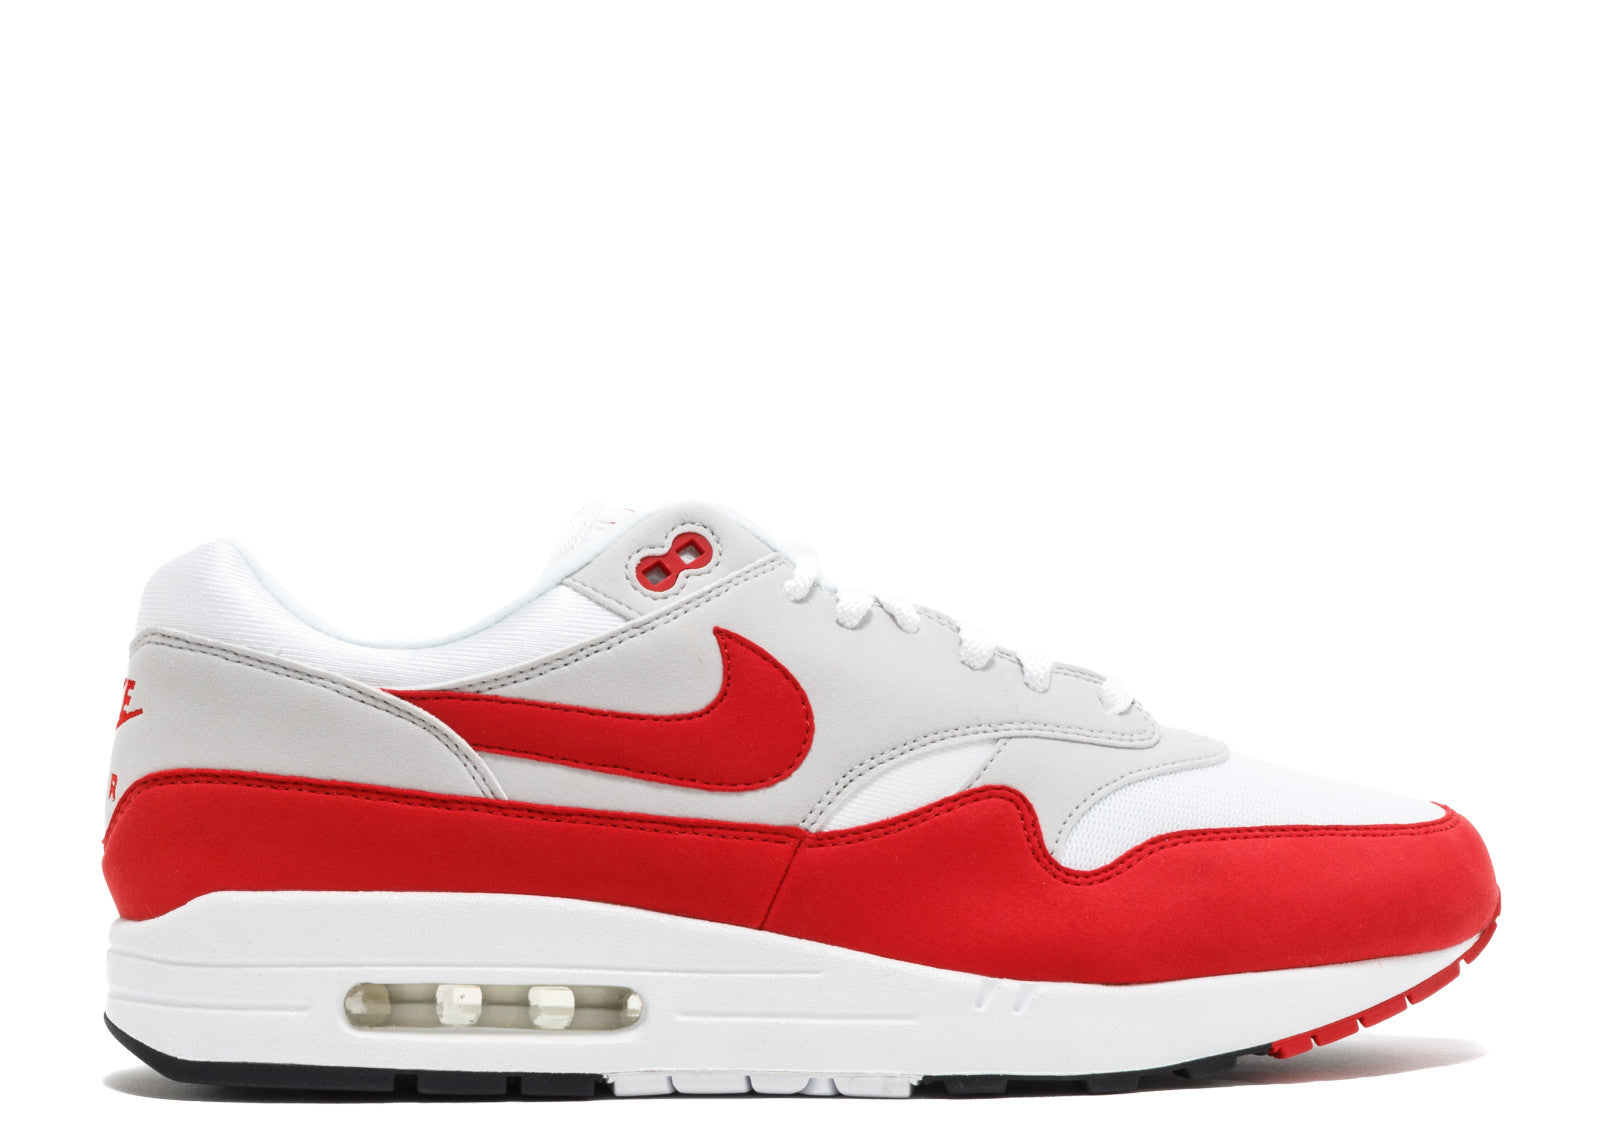 Where to buy Air Max 1 shoe laces